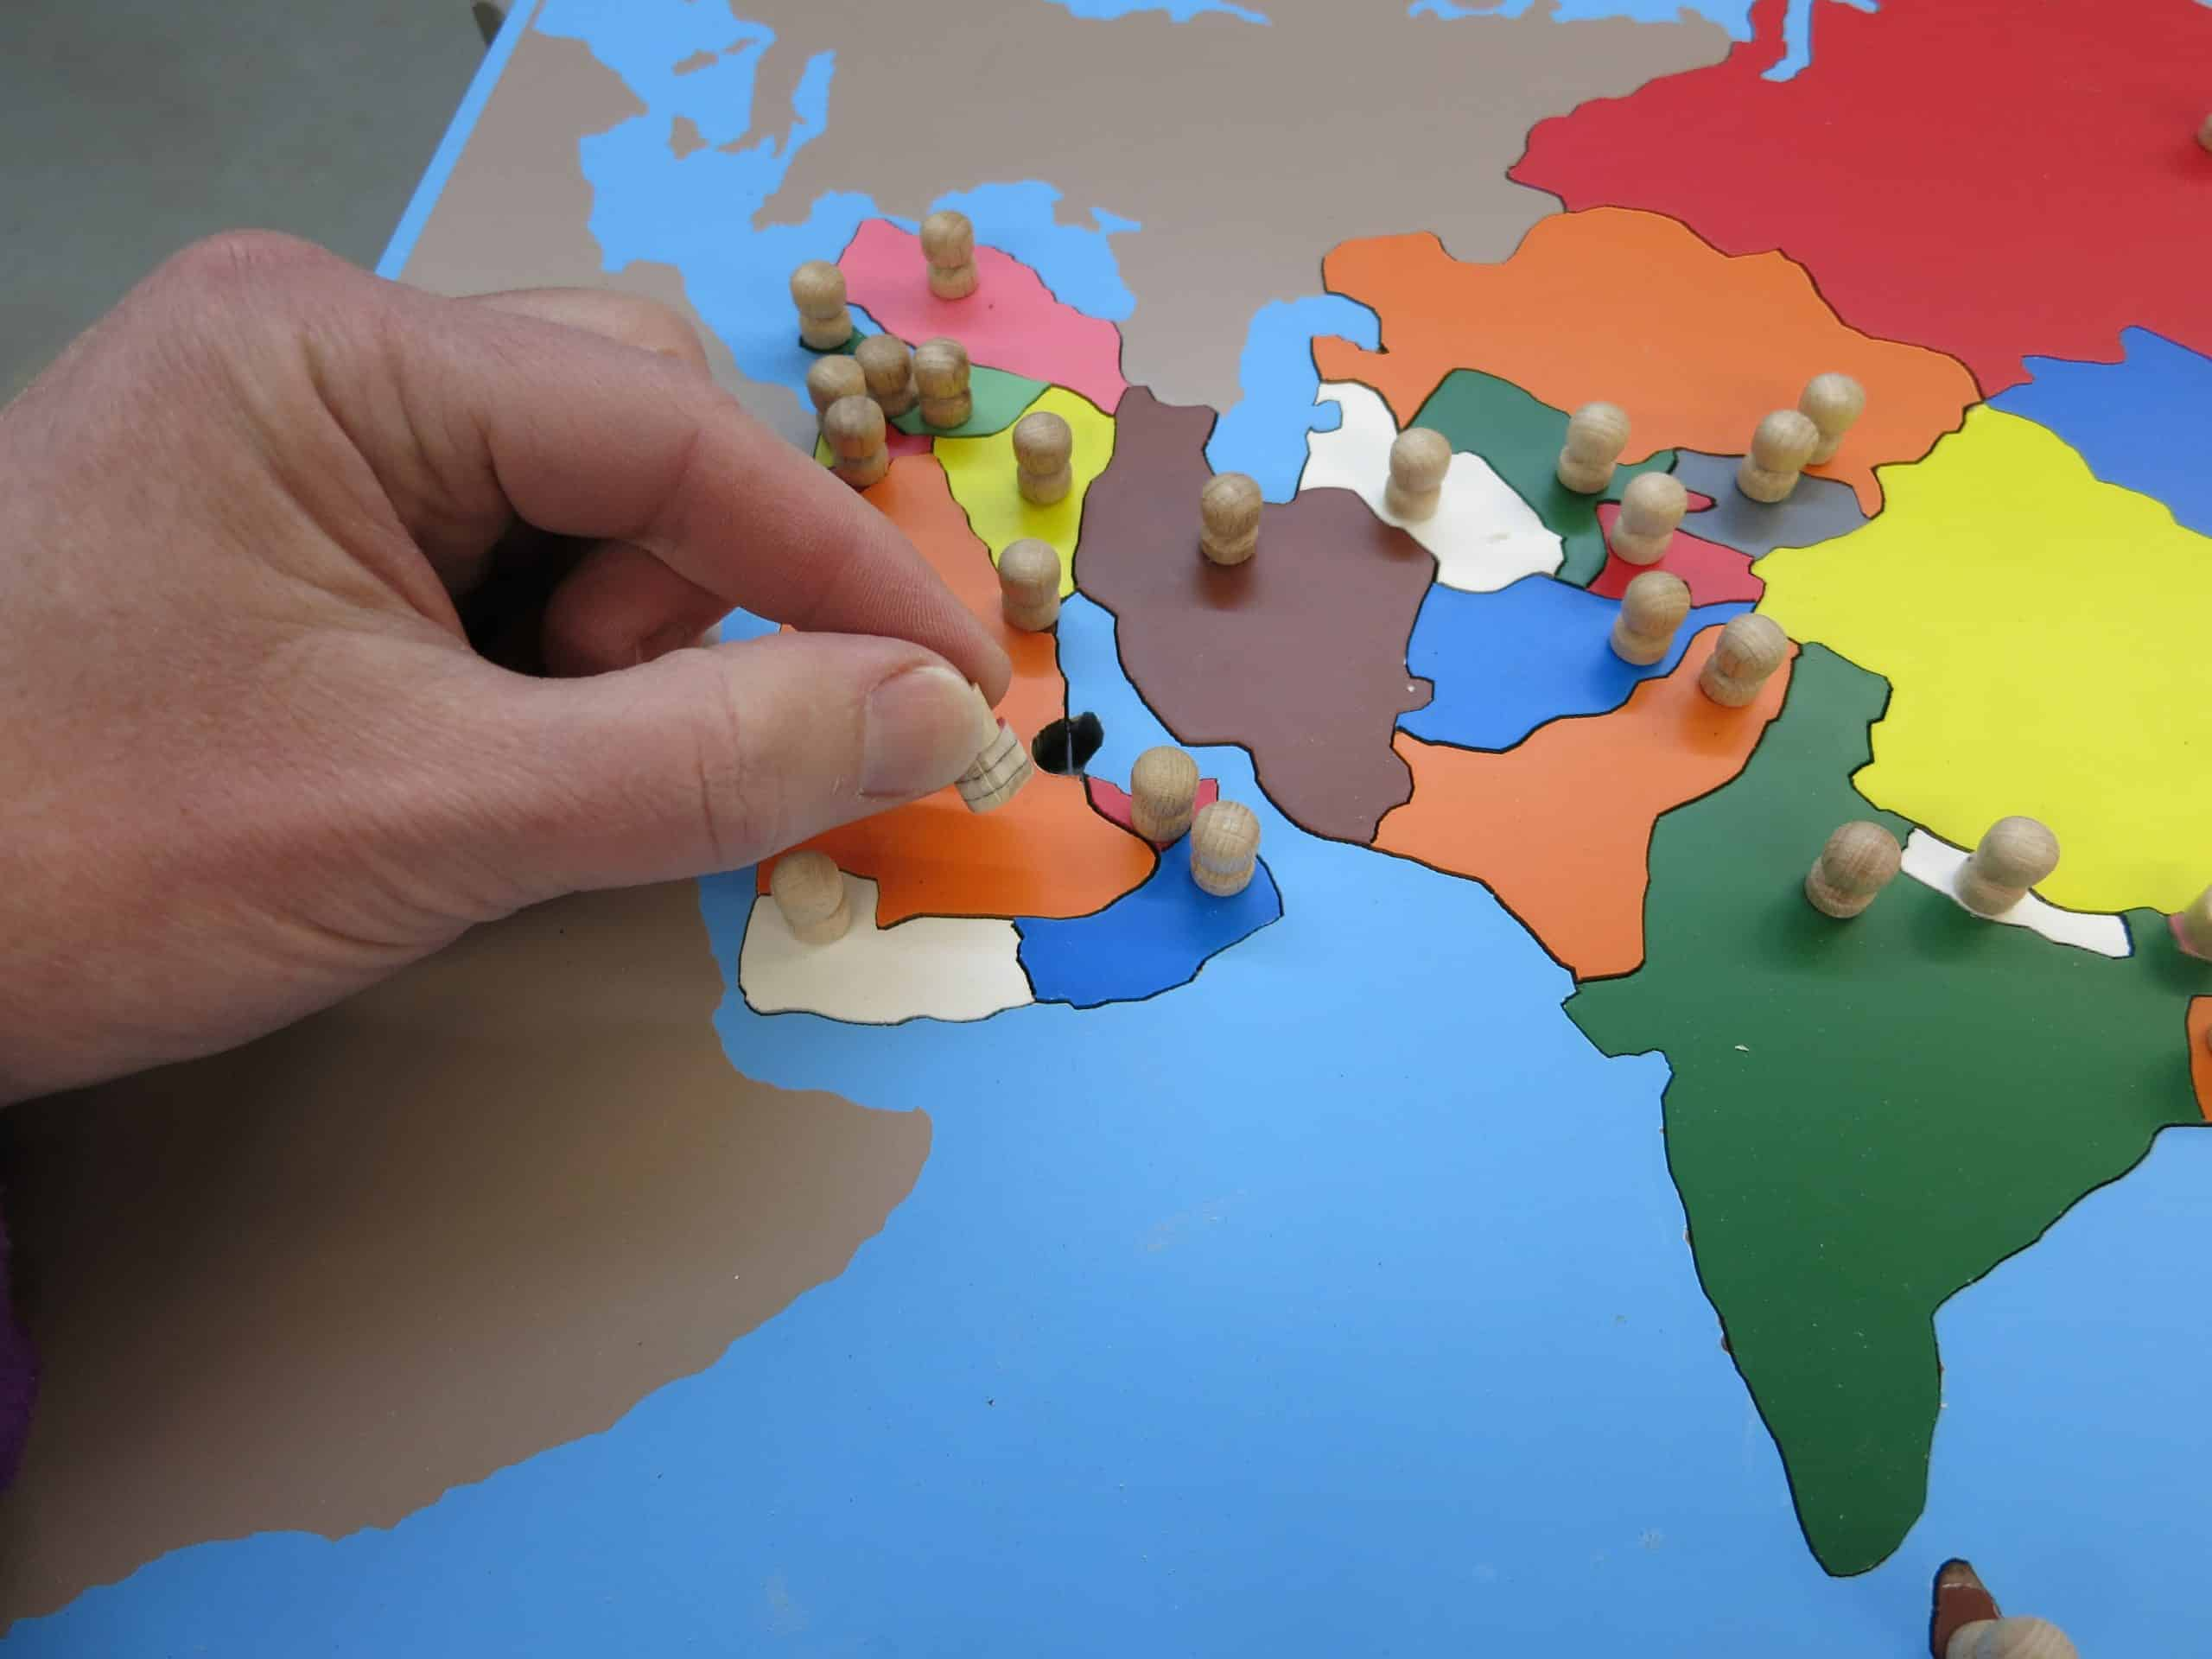 Montessori puzzle map showing the pincer grip of picking up a piece.